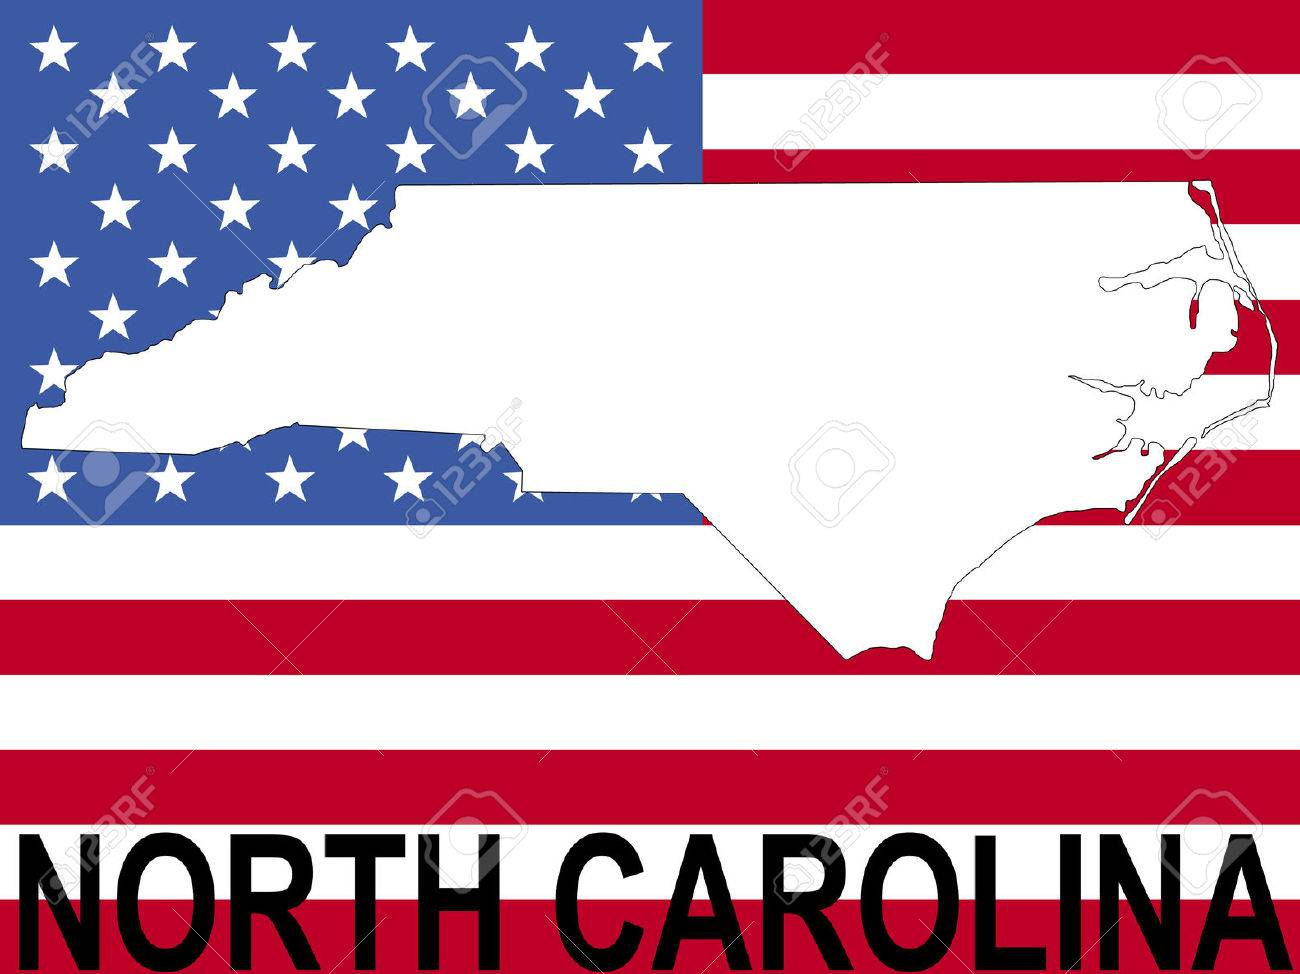 Where Is Nc On The Us Map Map Of North Carolina On American Flag - North carolina on the us map